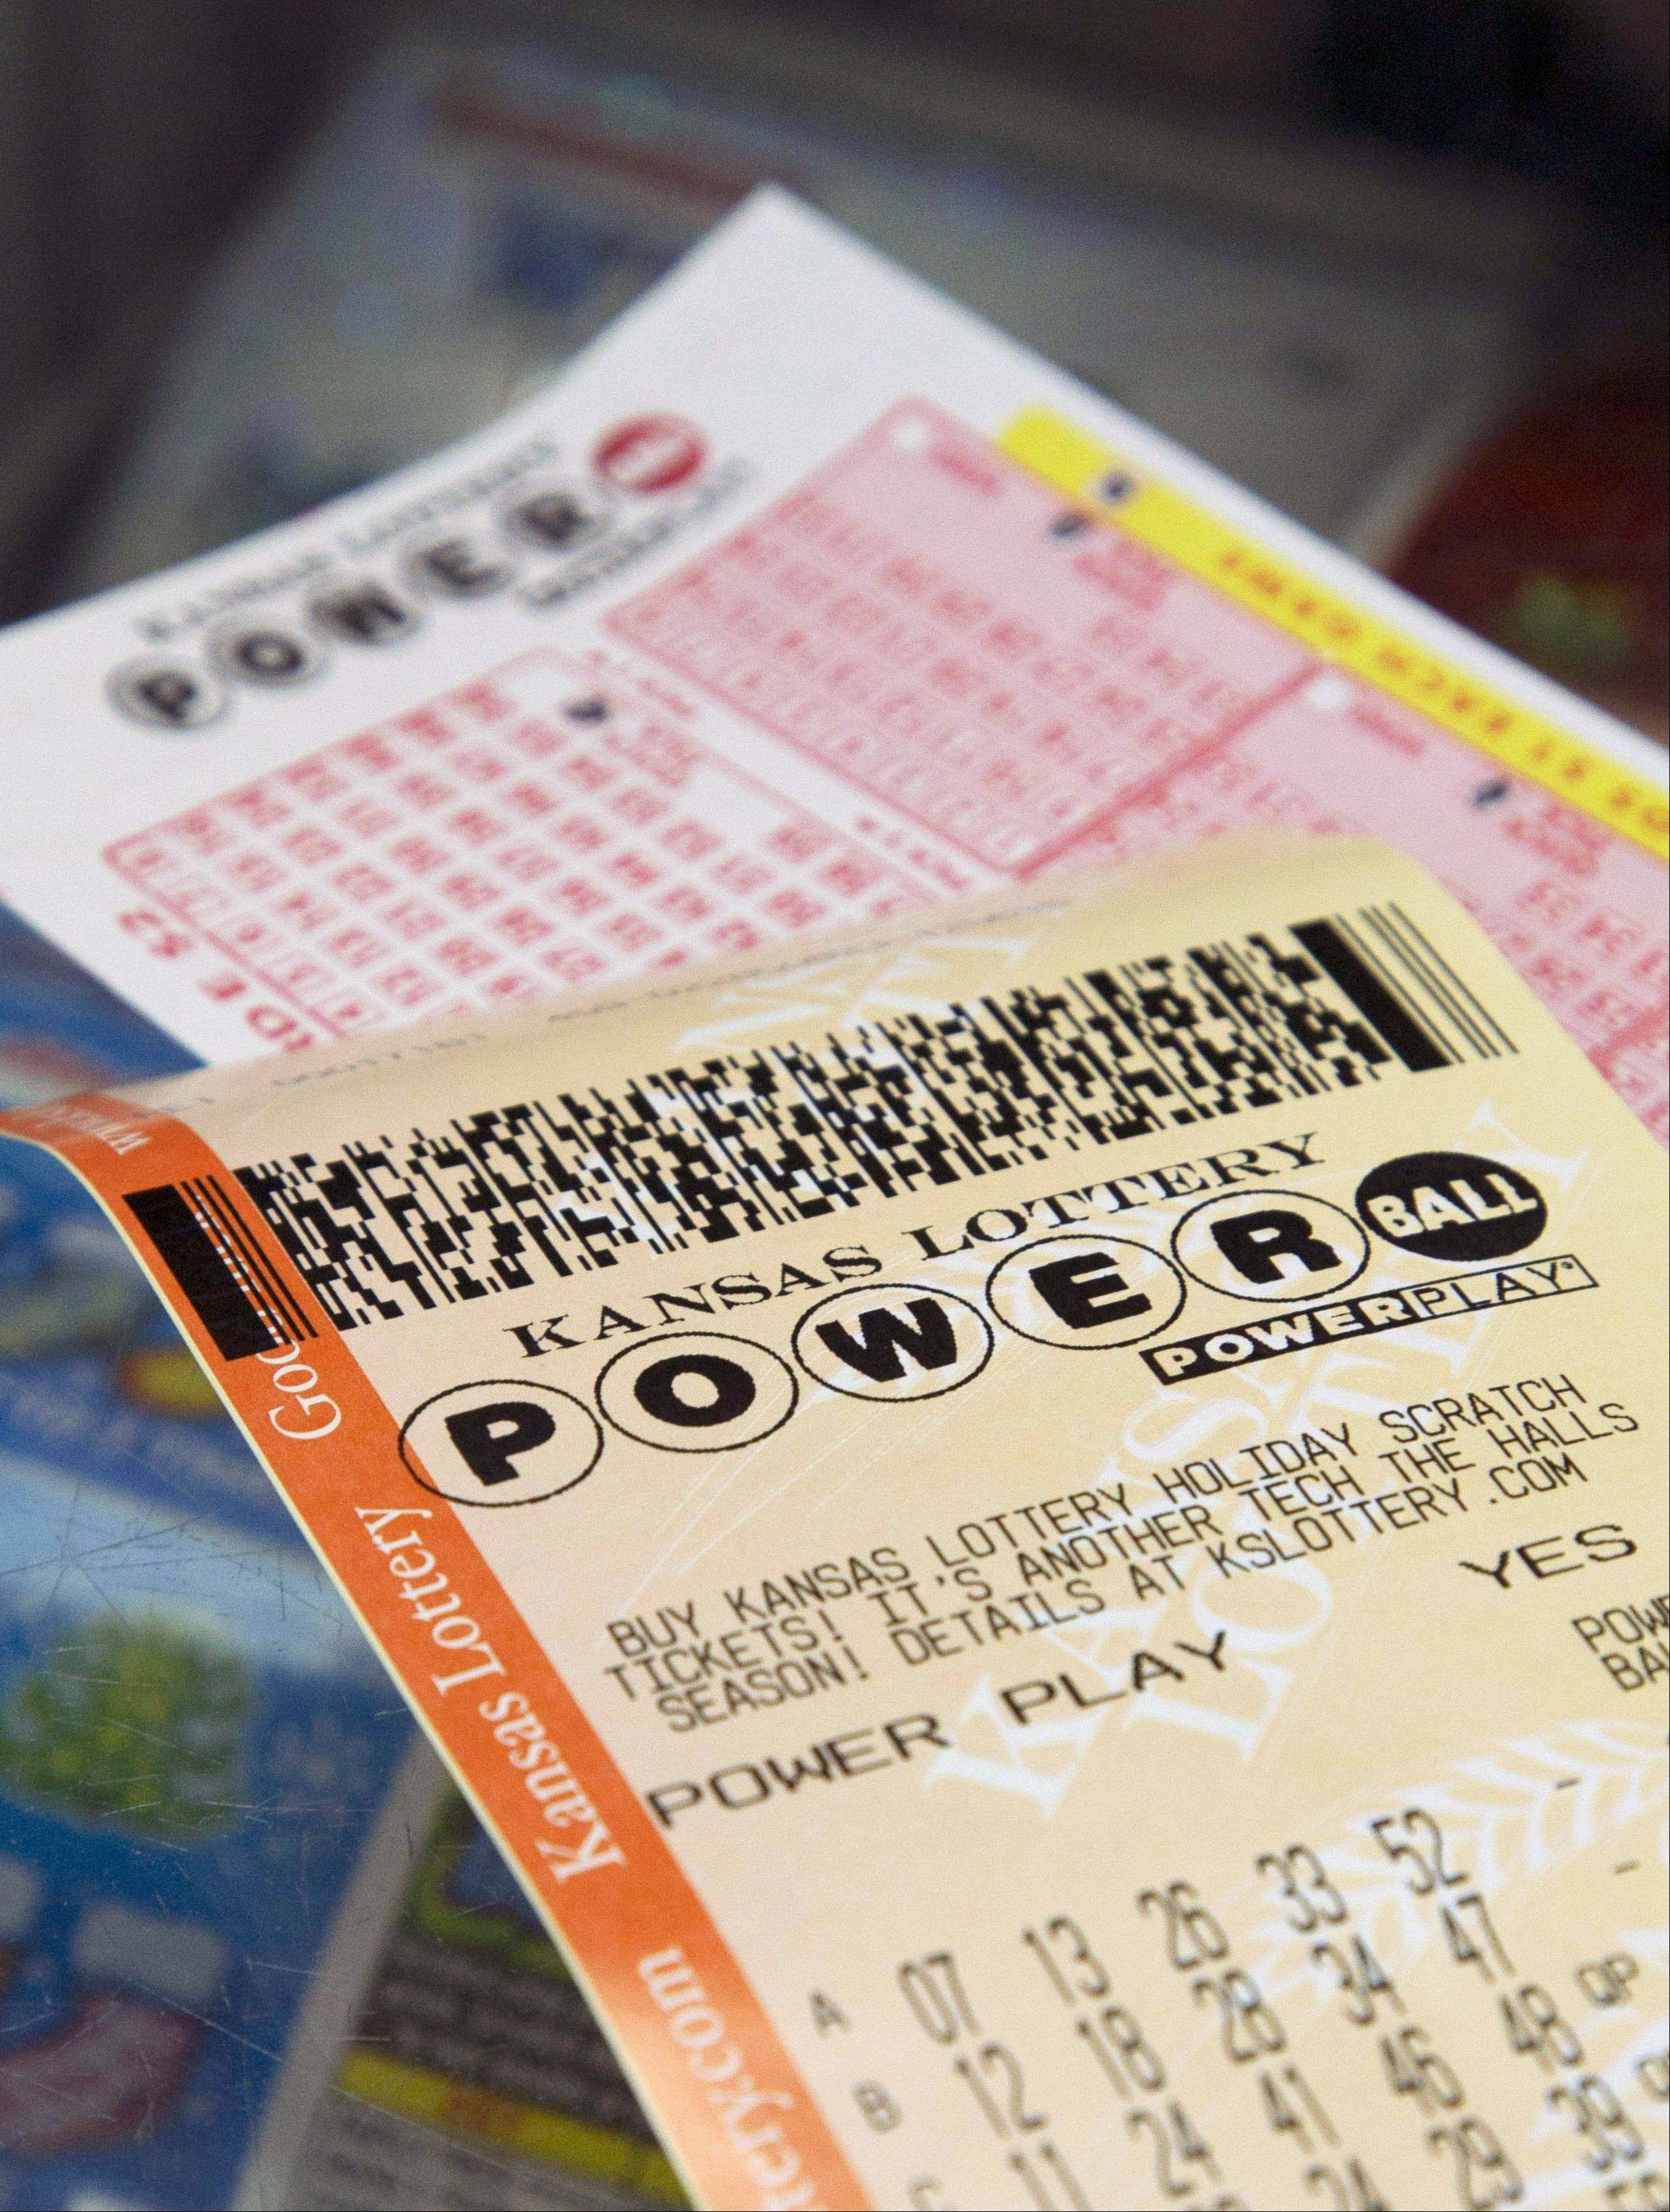 The jackpot for Powerball�s Wednesday drawing has climbed to $425 million. No one picked all of the winning numbers on Saturday.